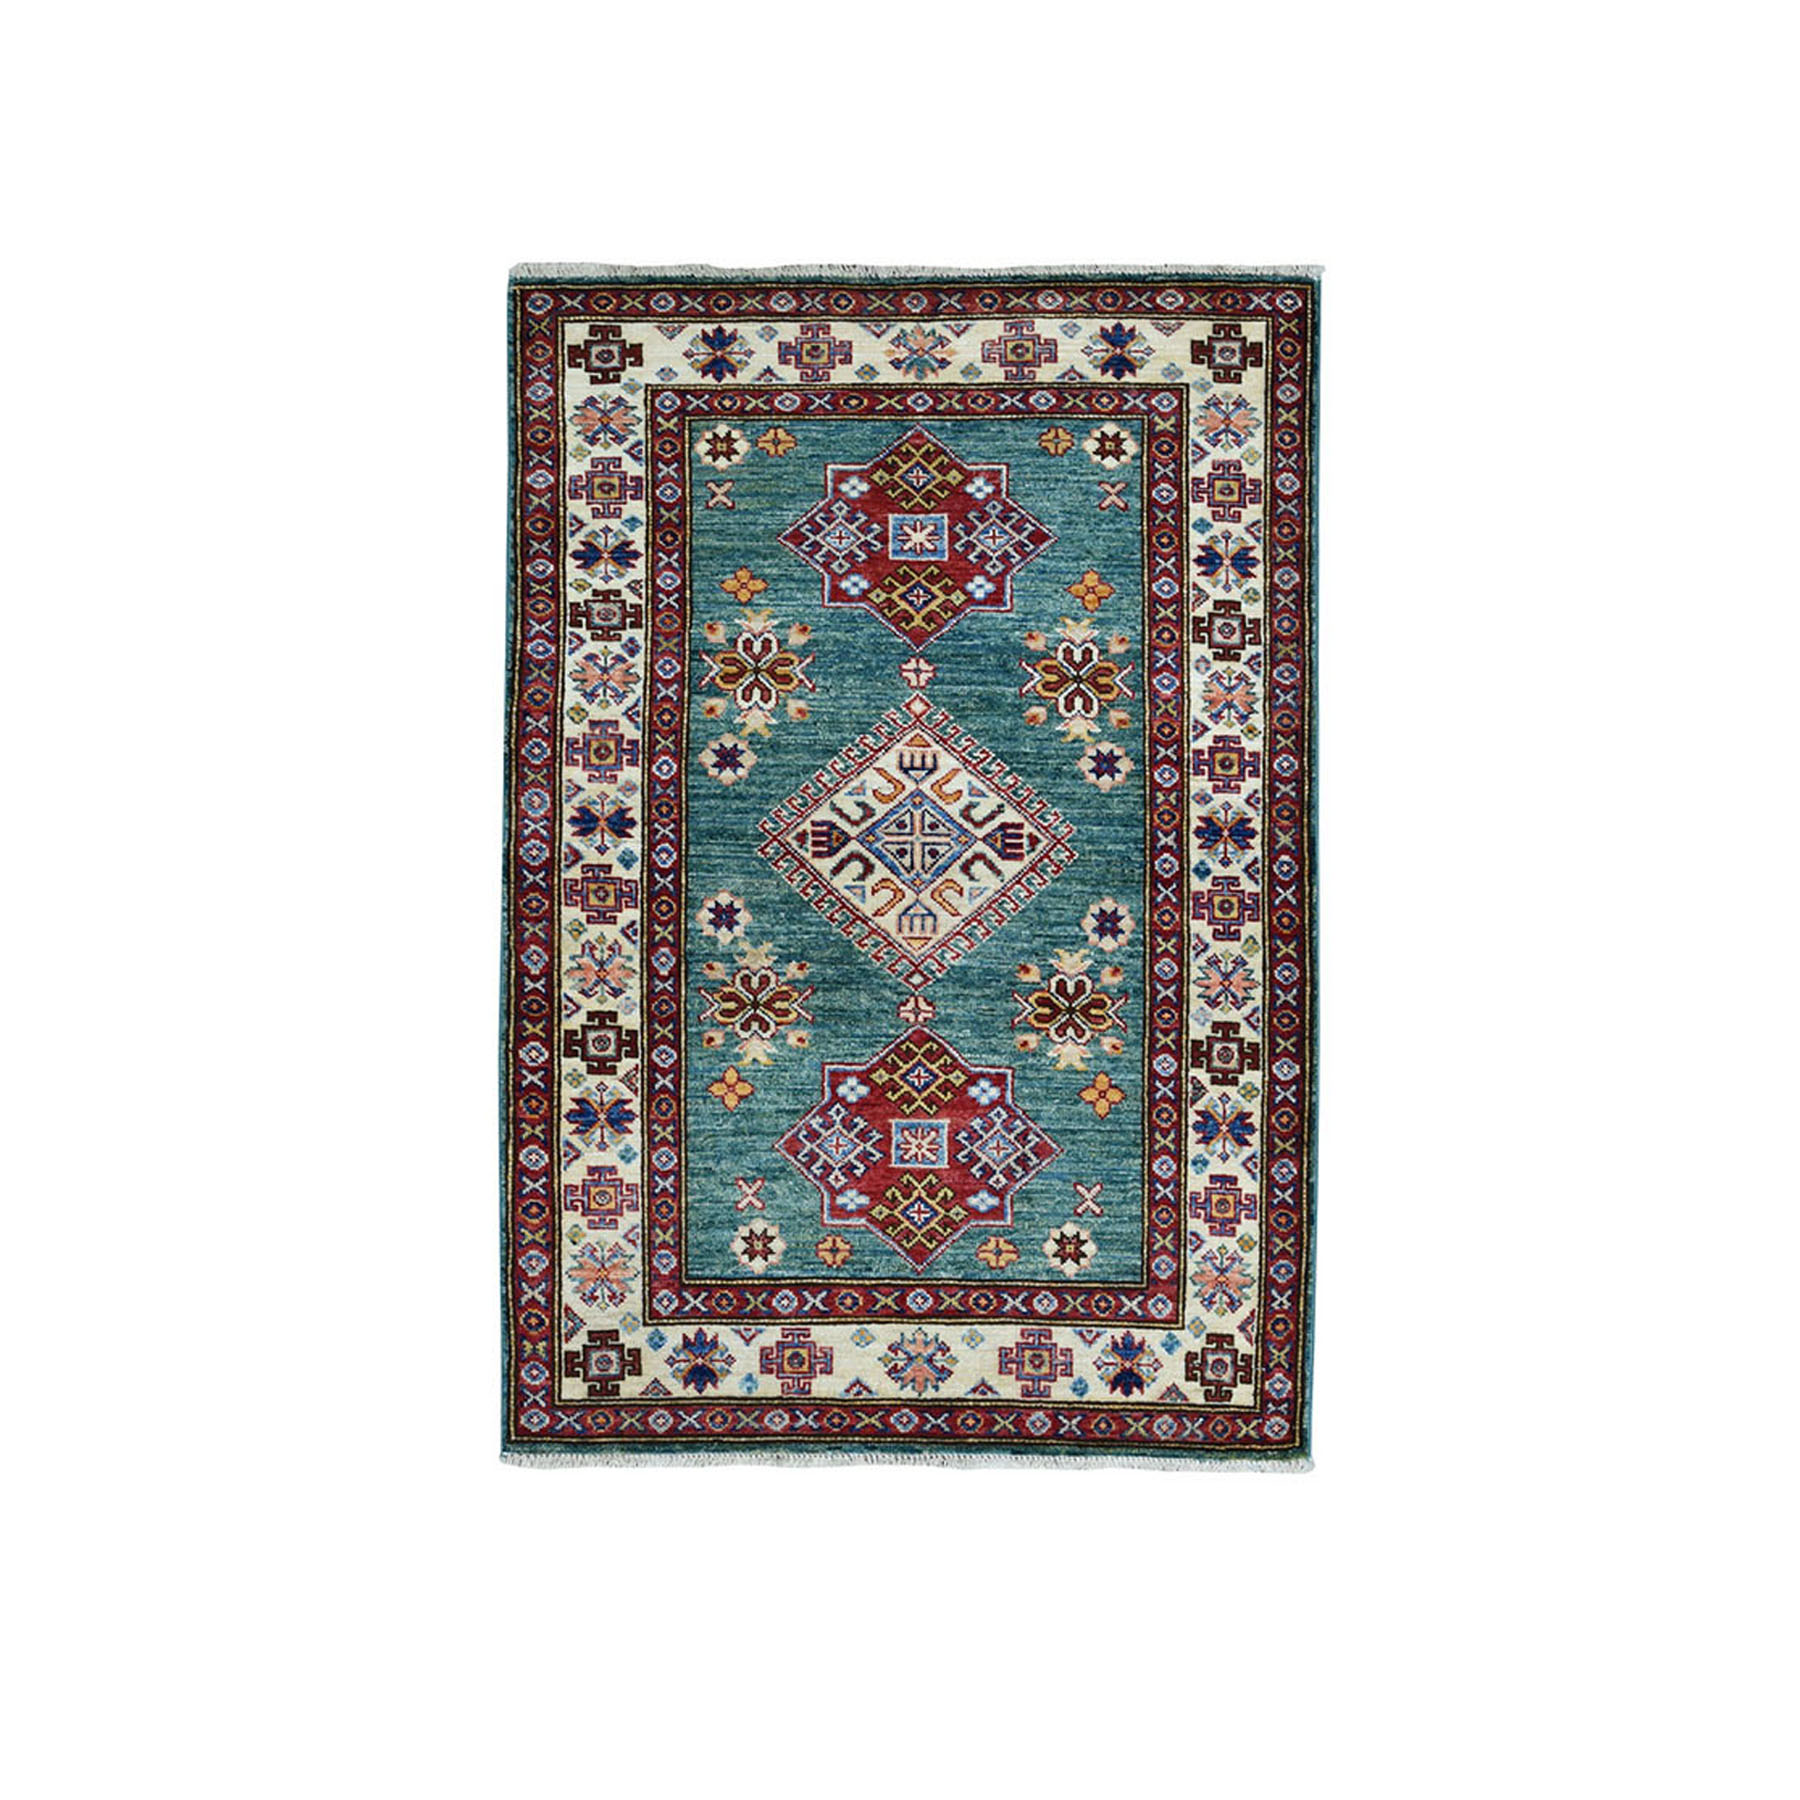 "3'X4'1"" Green Super Kazak Pure Wool Geometric Design Hand-Knotted Oriental Rug moae09dc"